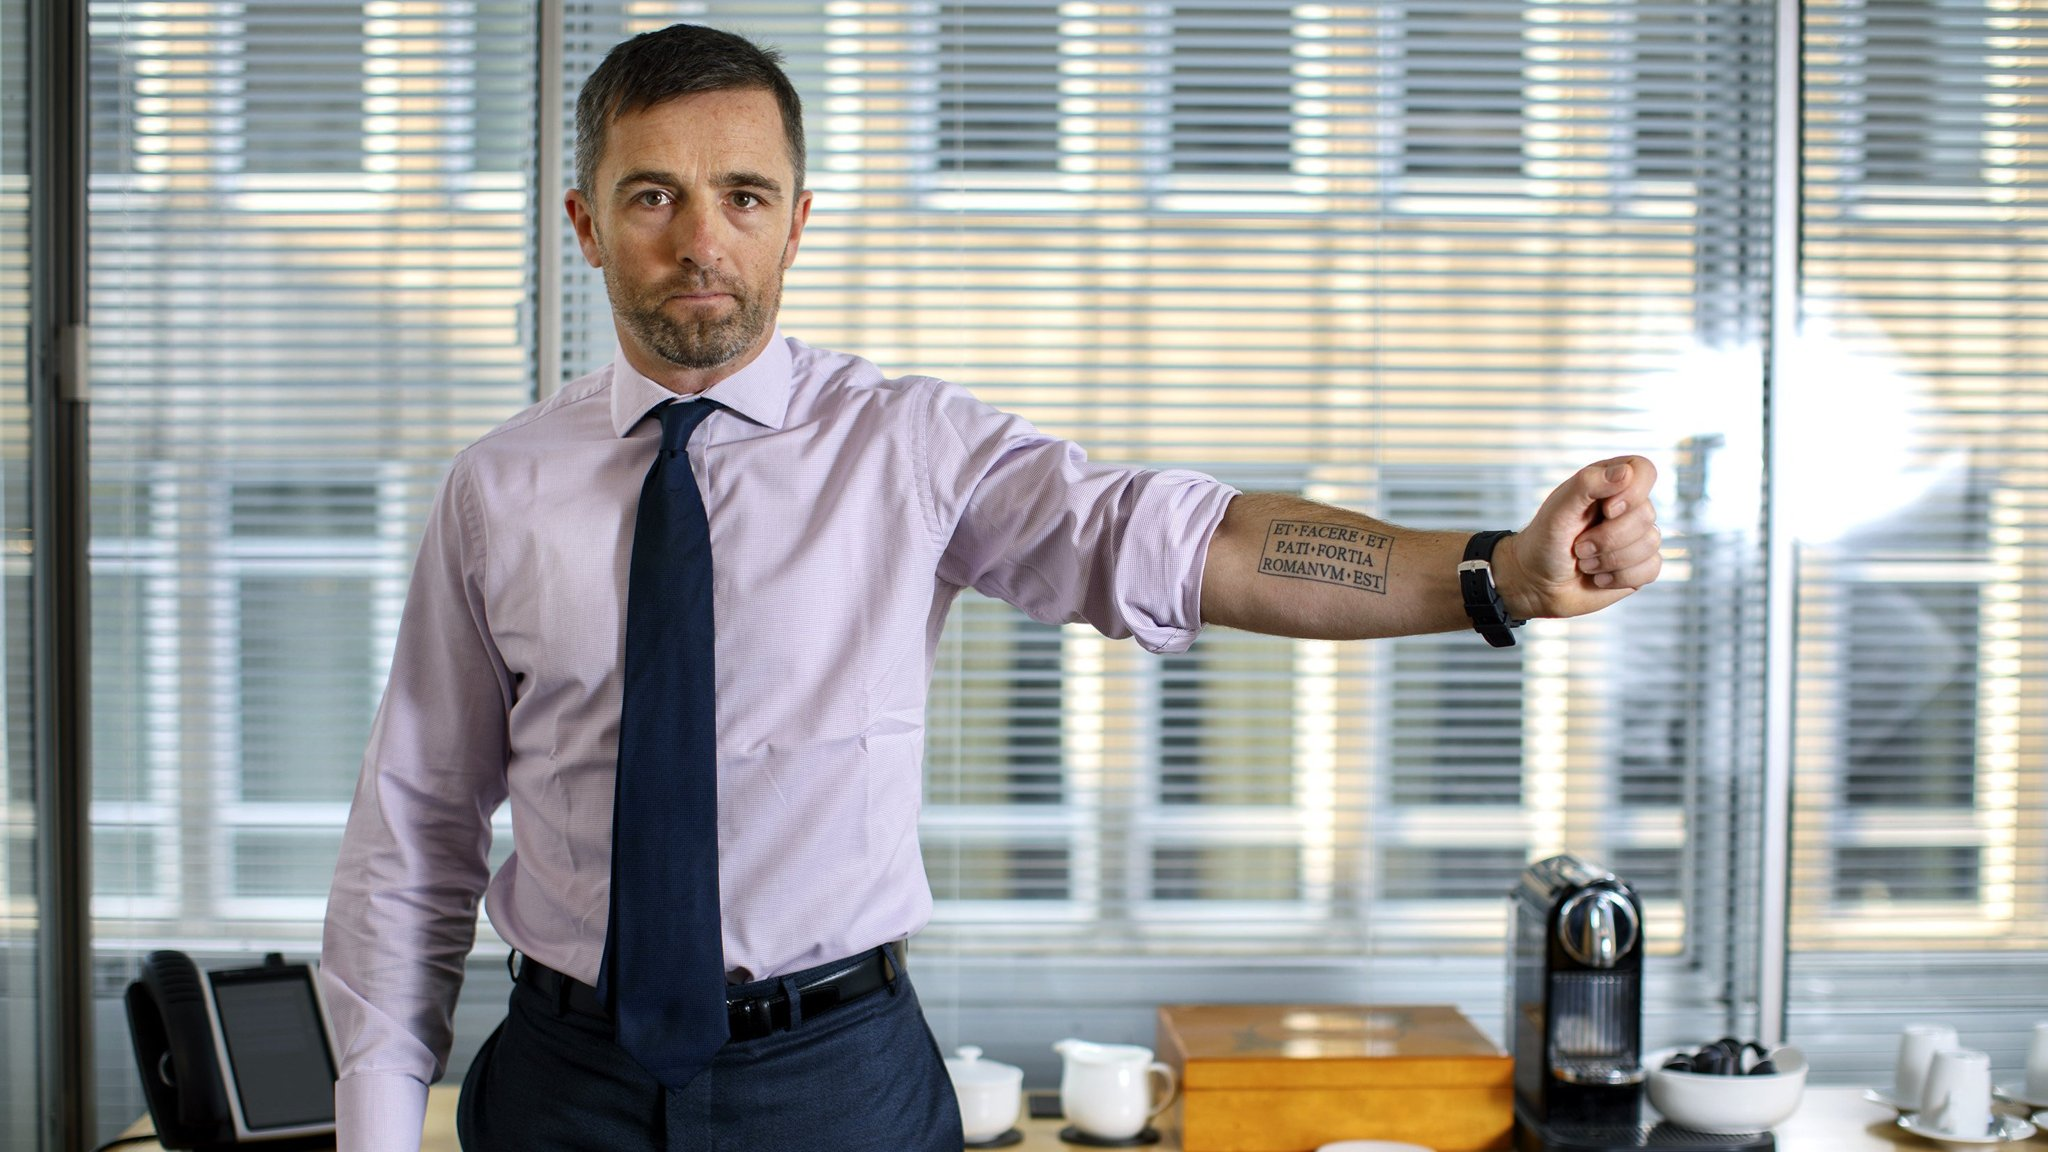 Tattoos Bring A New Form Of Body Language To The Office